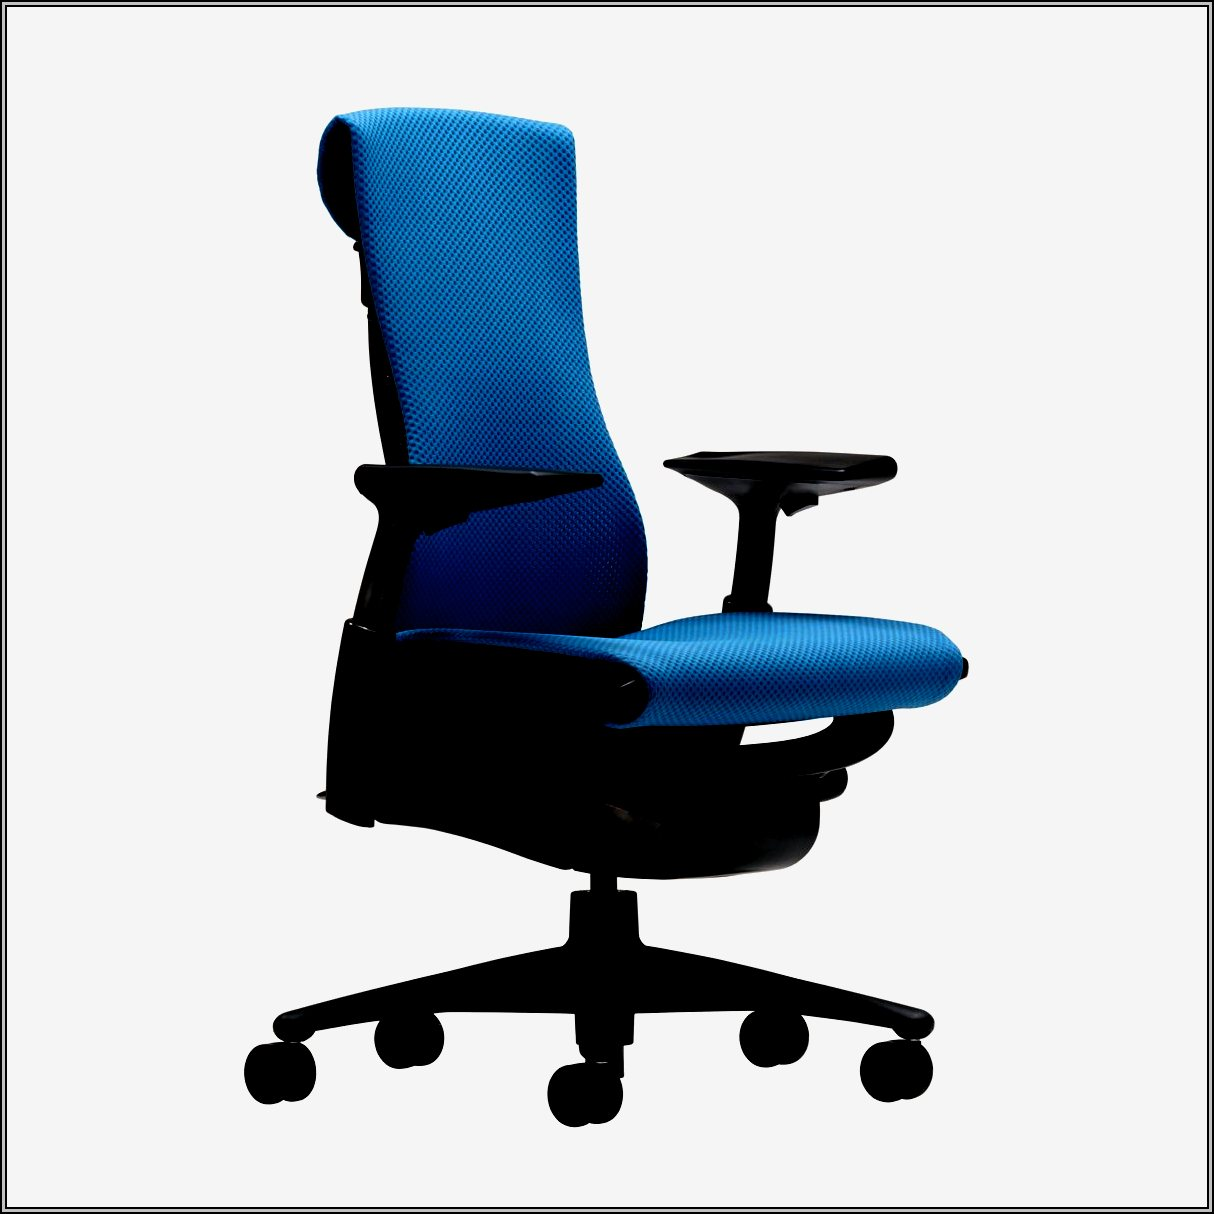 Herman Miller Chair Images